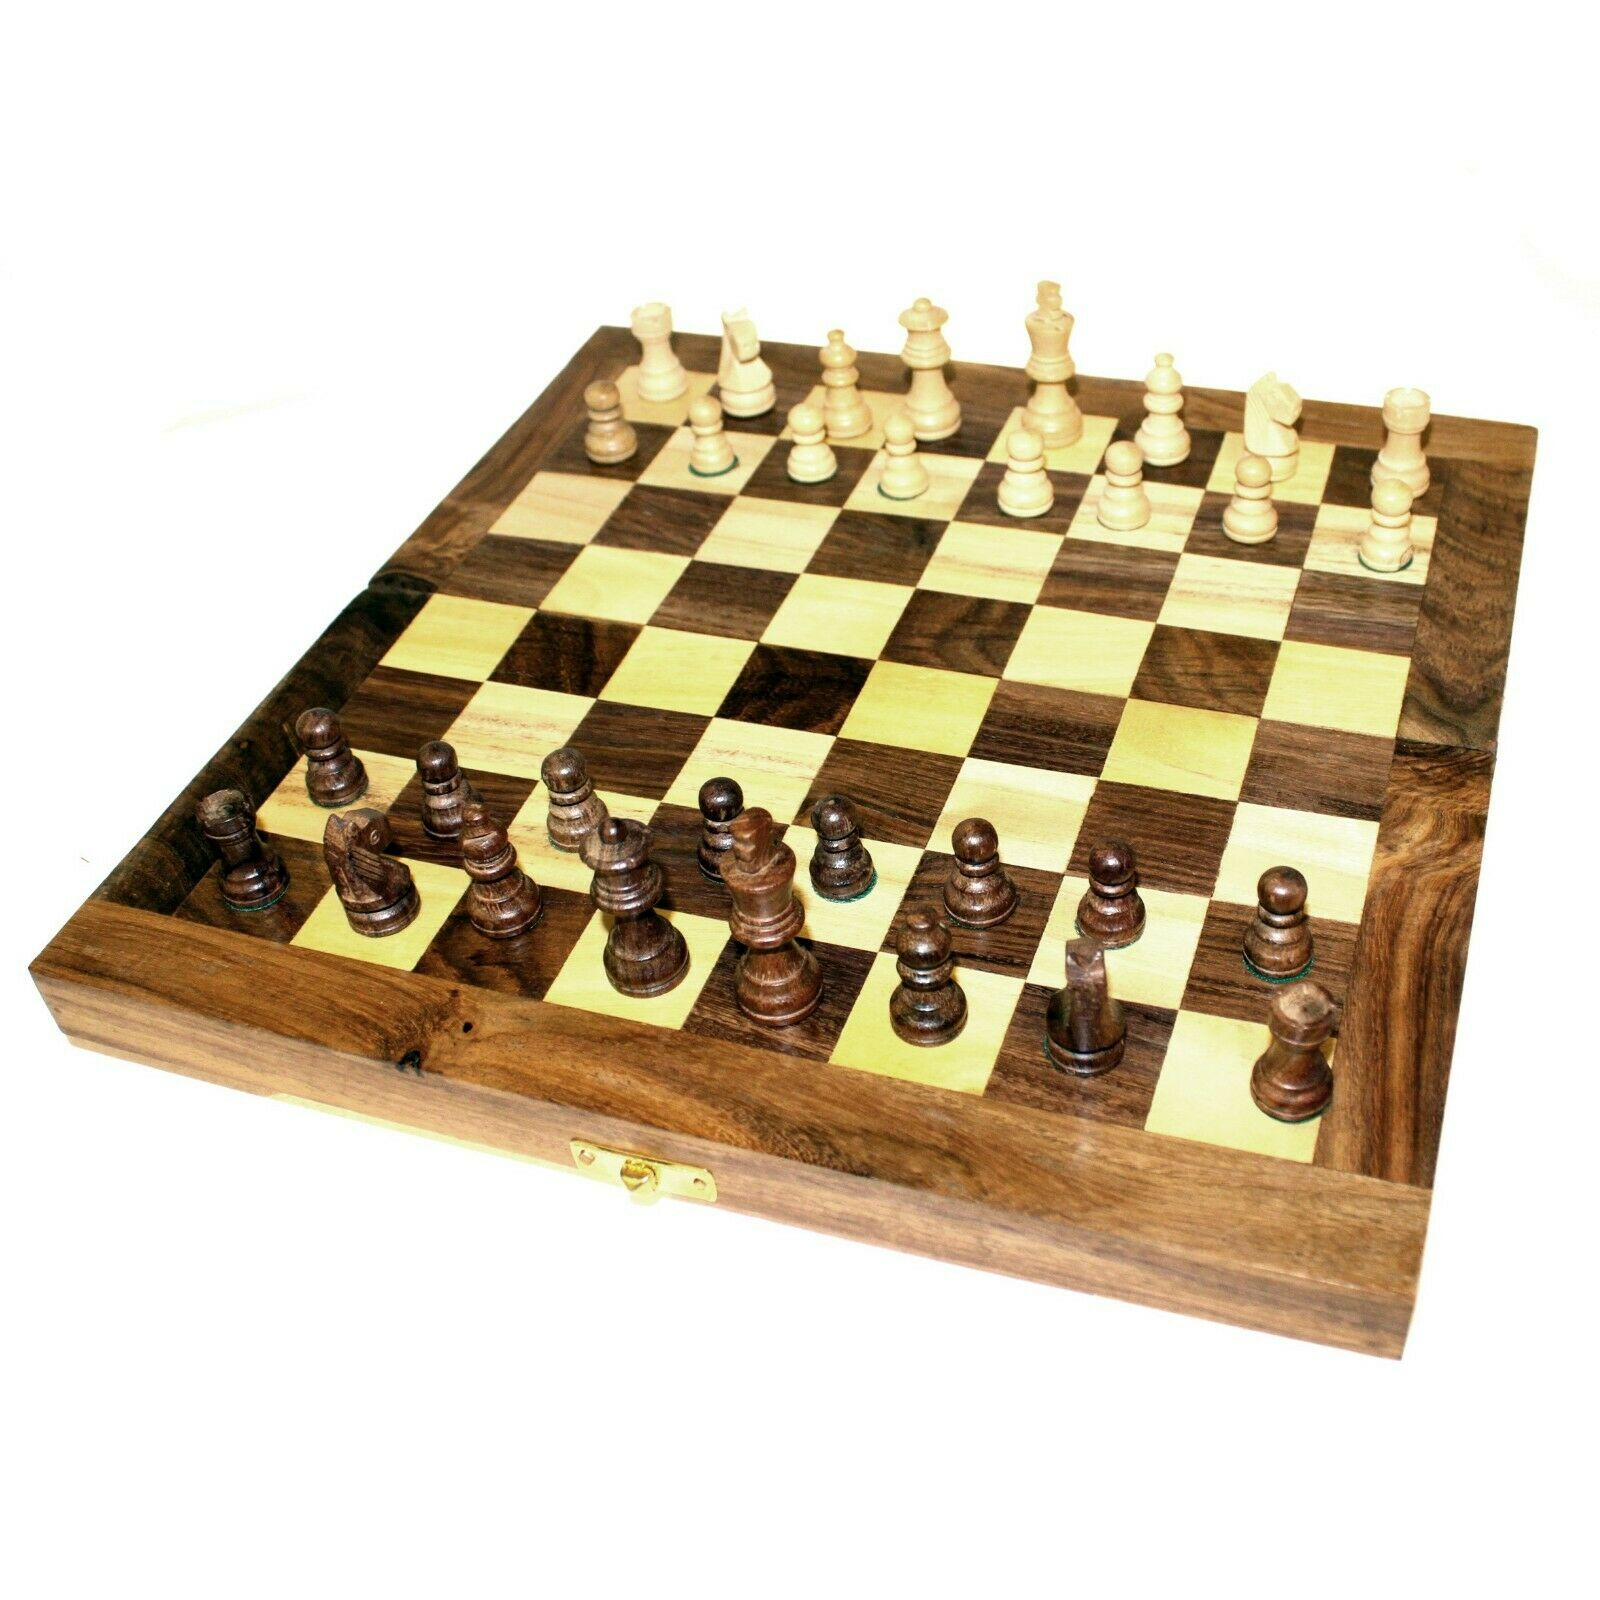 Chess game wood d classic xl 40cms 40cms